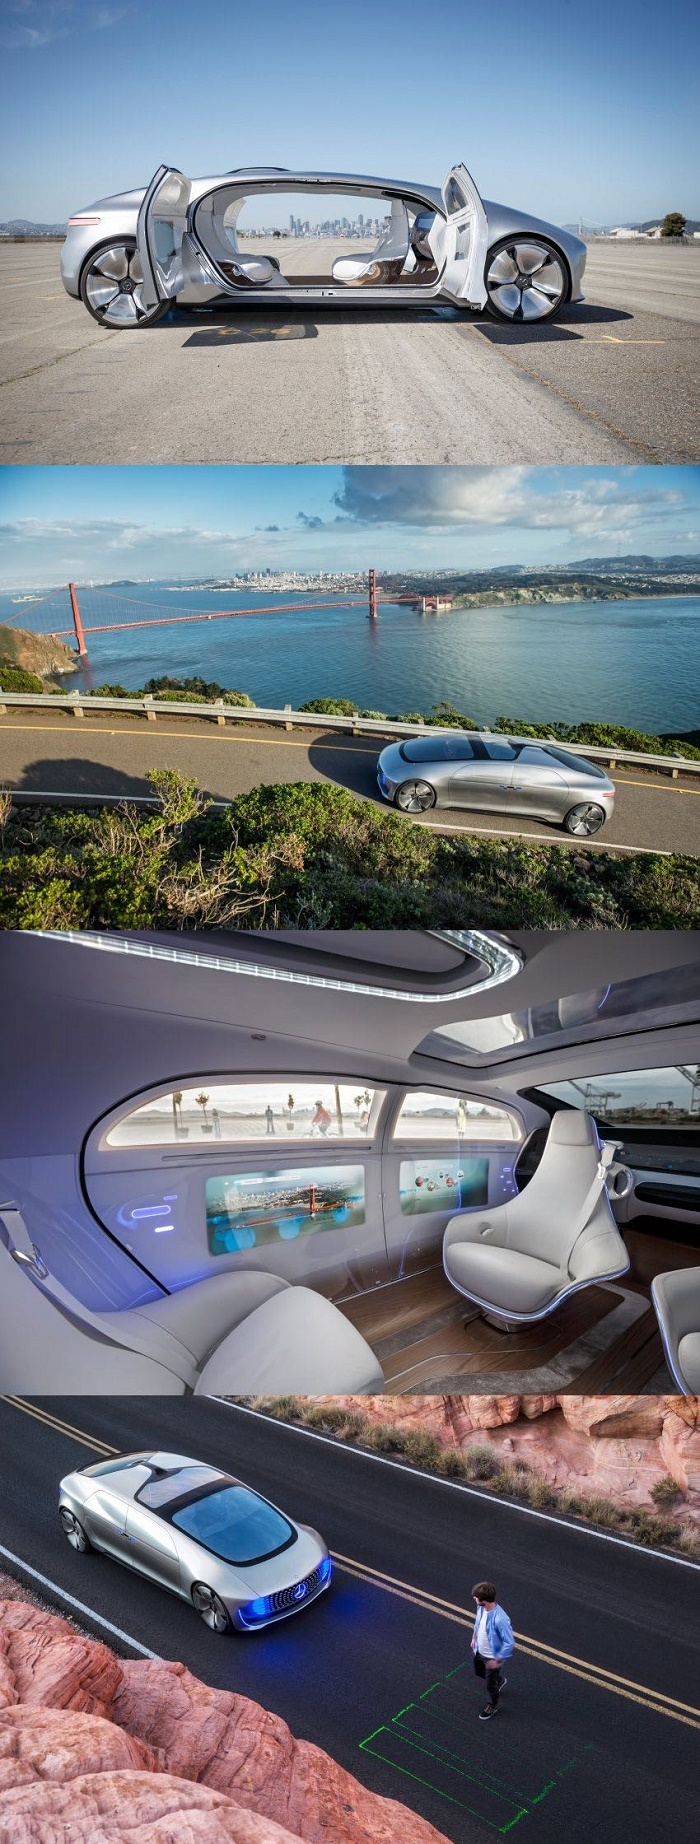 Driverless Mercedes tested in San Francisco can project cross-walk via laser